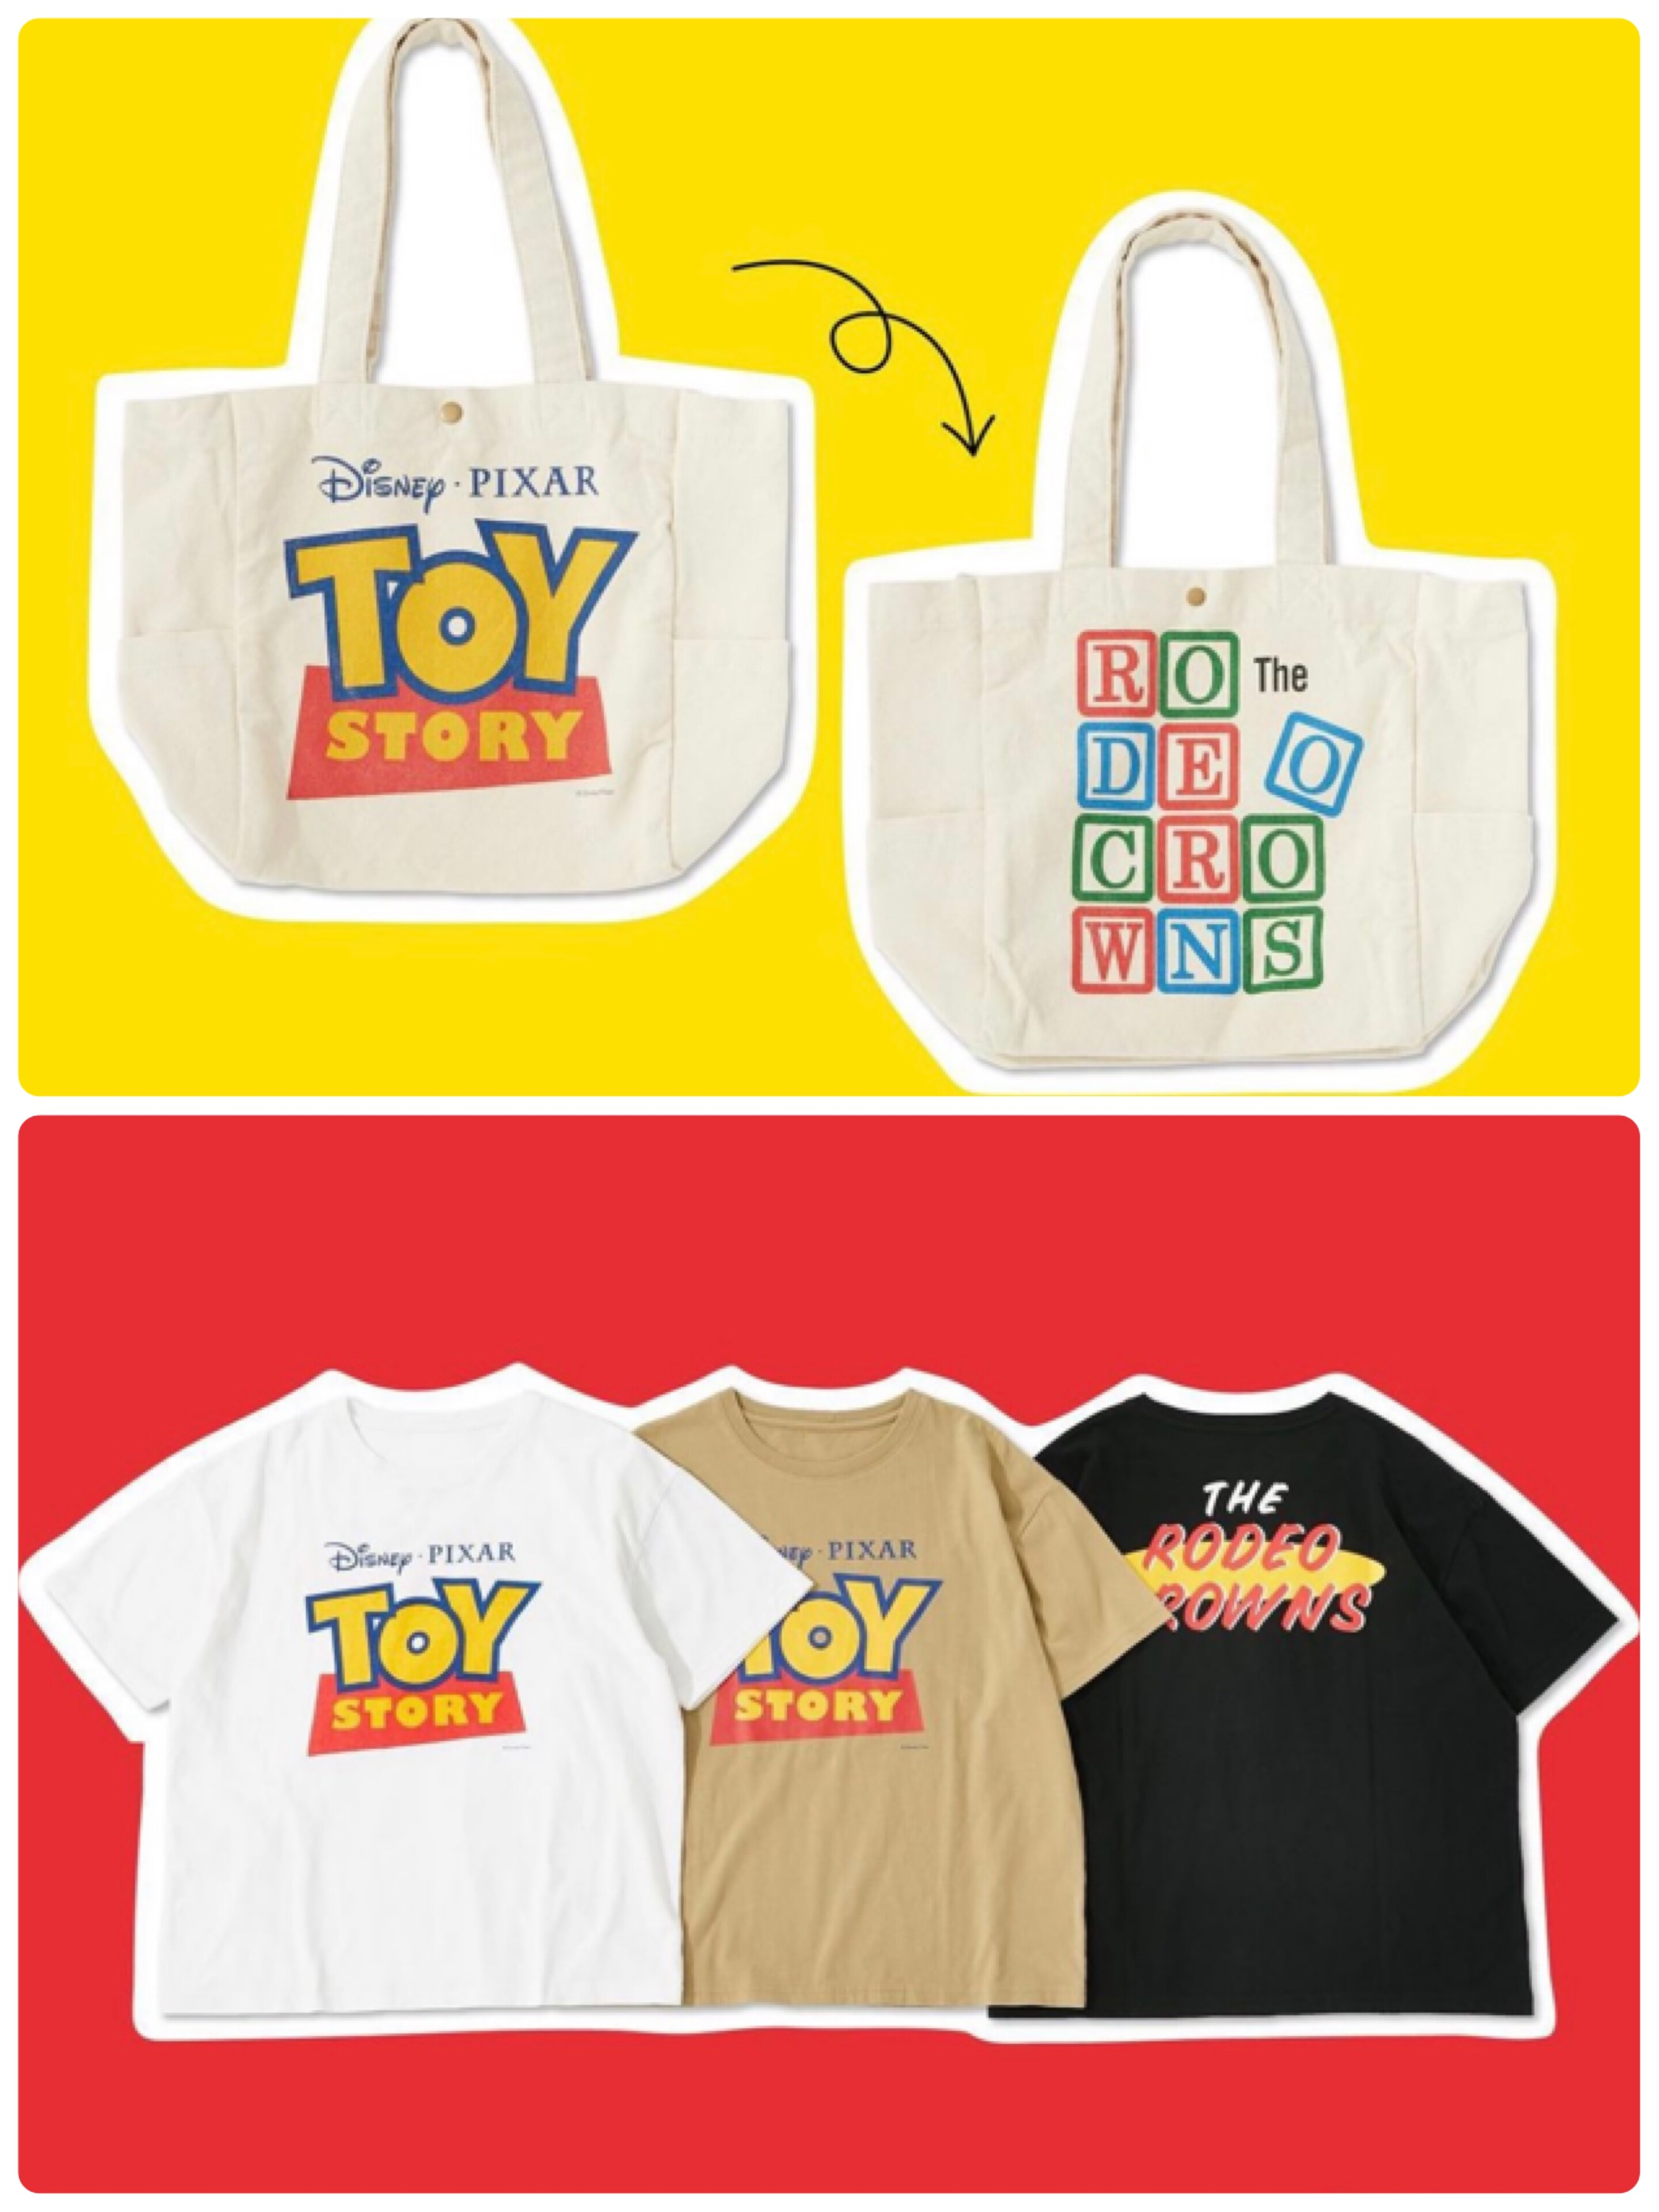 TOY STORY✖️RODEO CROWNSコラボ🧸🧩